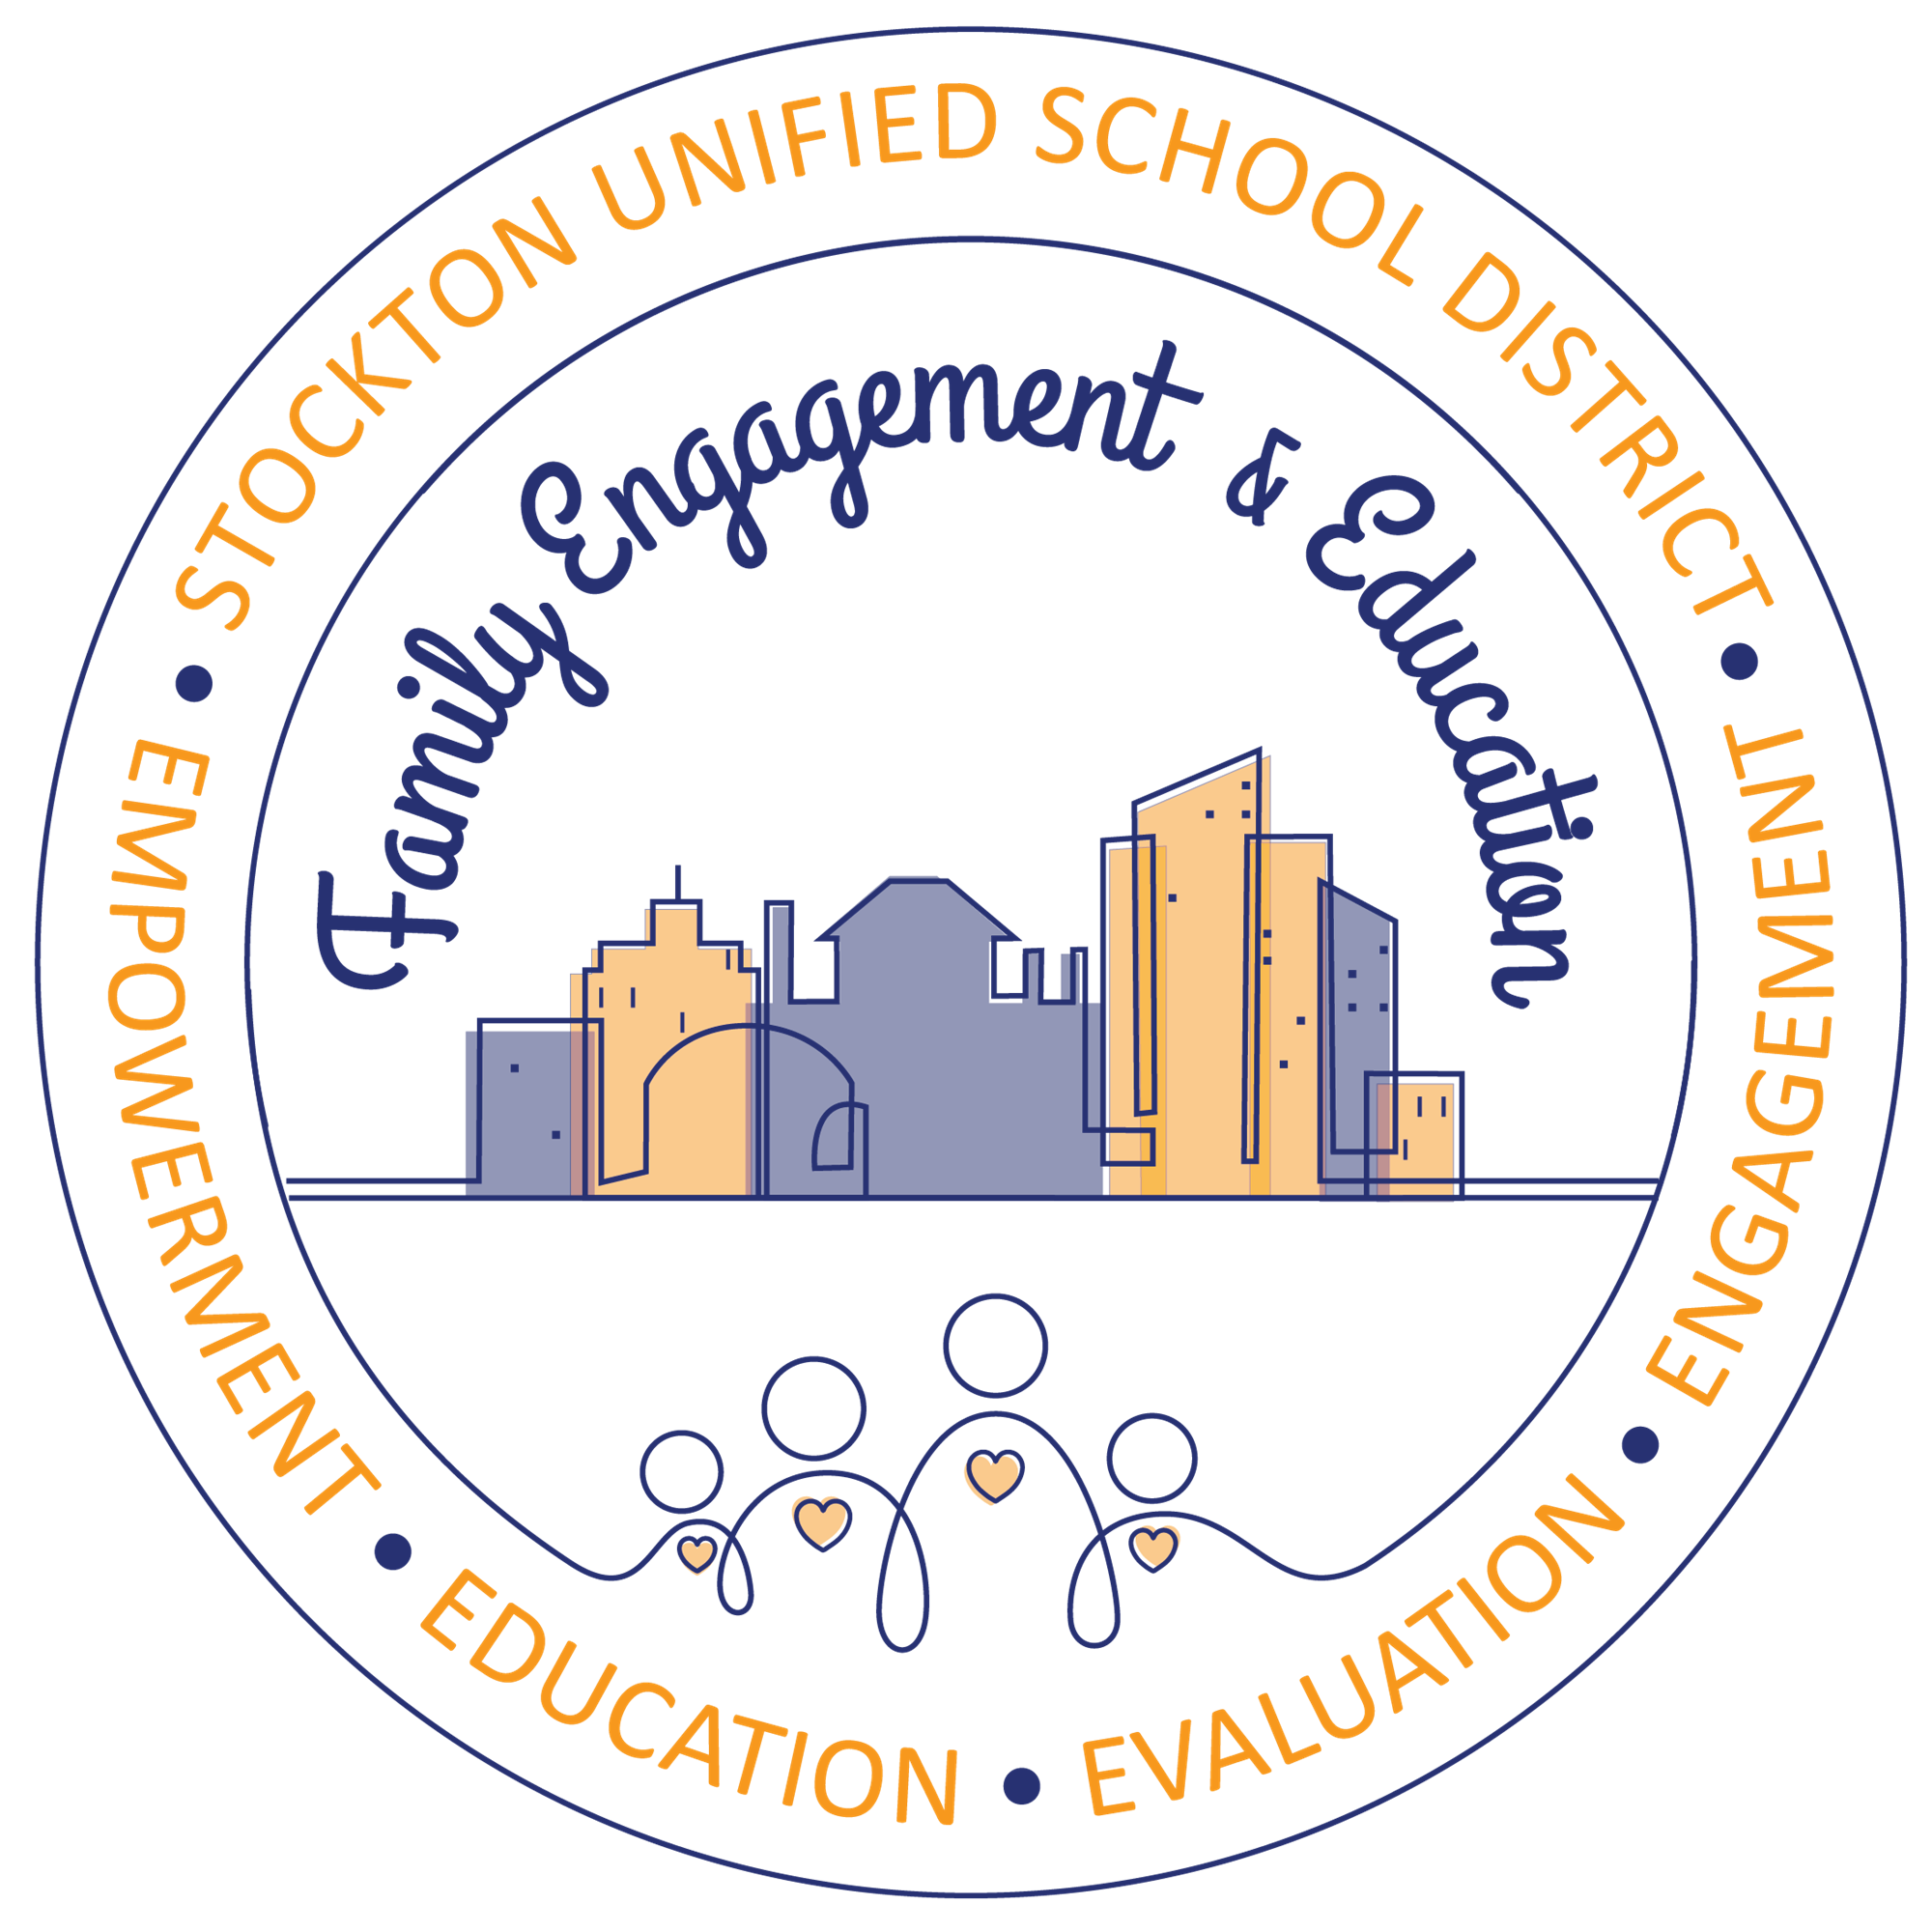 Family Engagement and Education Department